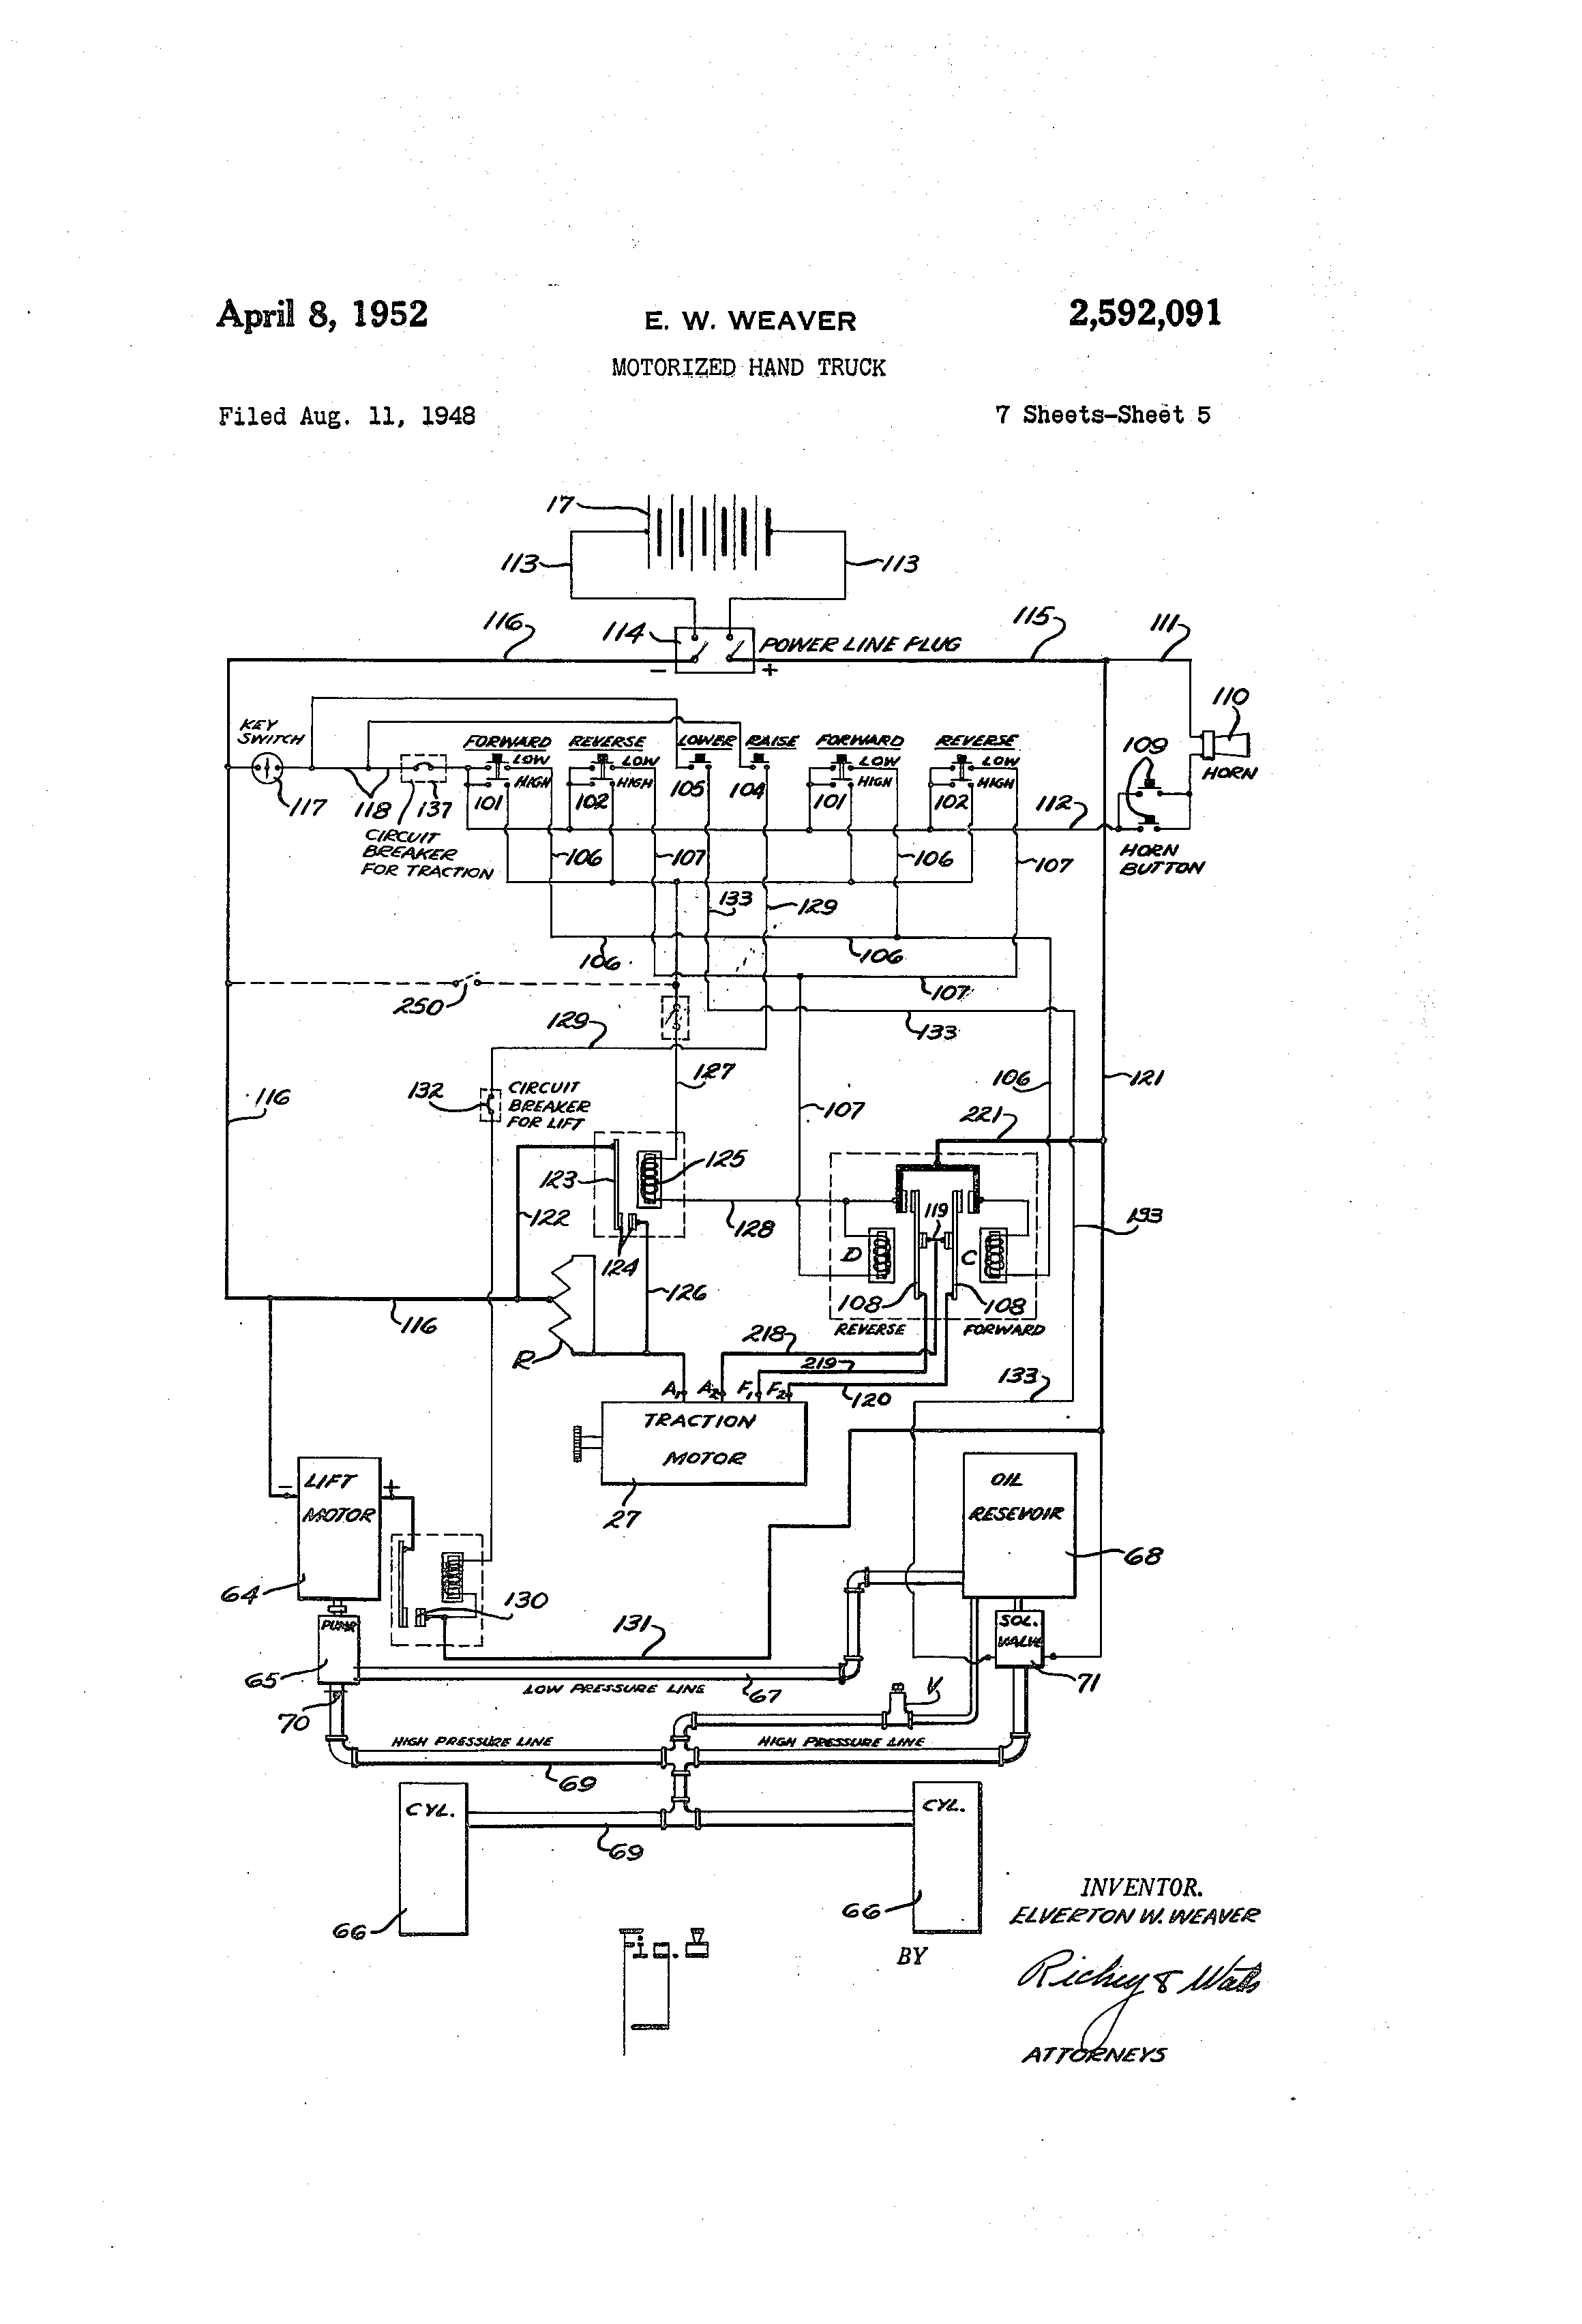 fork lift ignition switch wiring diagram yale pallet jack wiring diagram yale power jack parts 36 volt fork lift battery charger wiring diagram